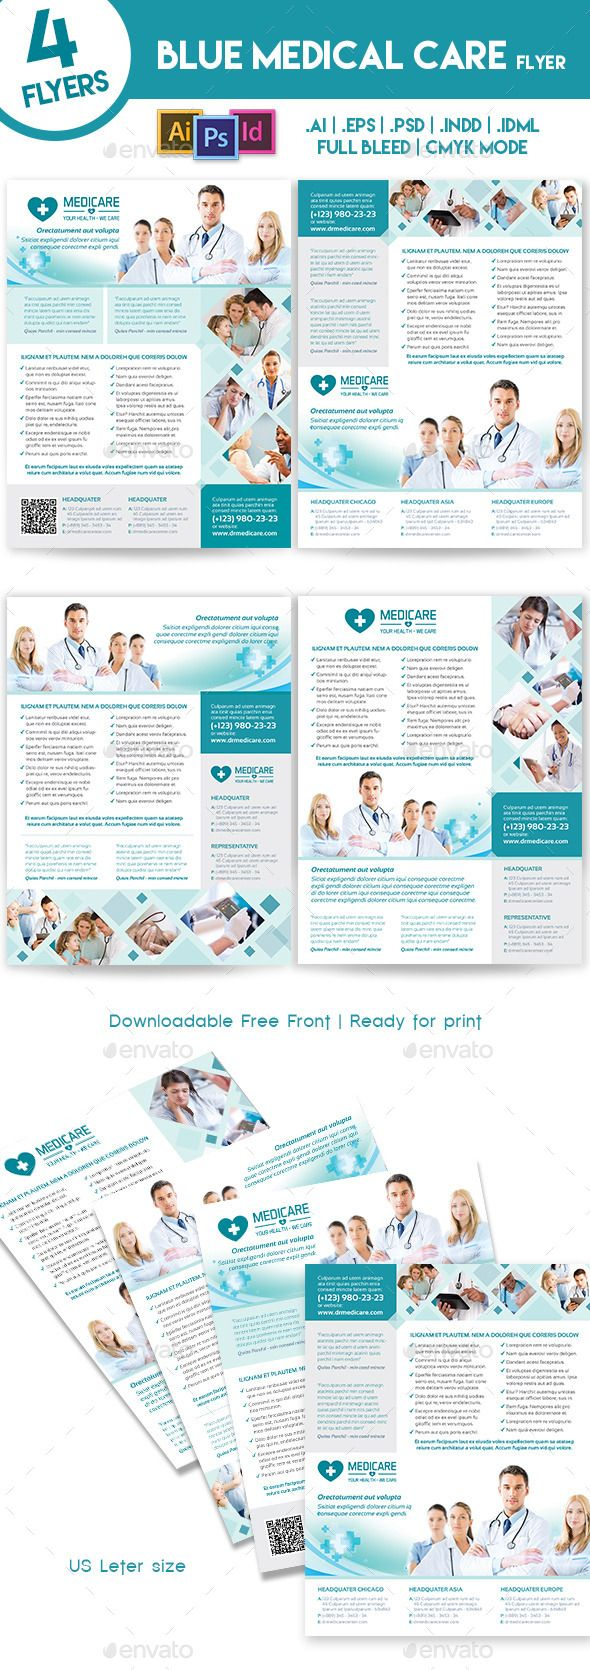 pharmacy brochure template free - 1000 images about flyers on pinterest spelling bee